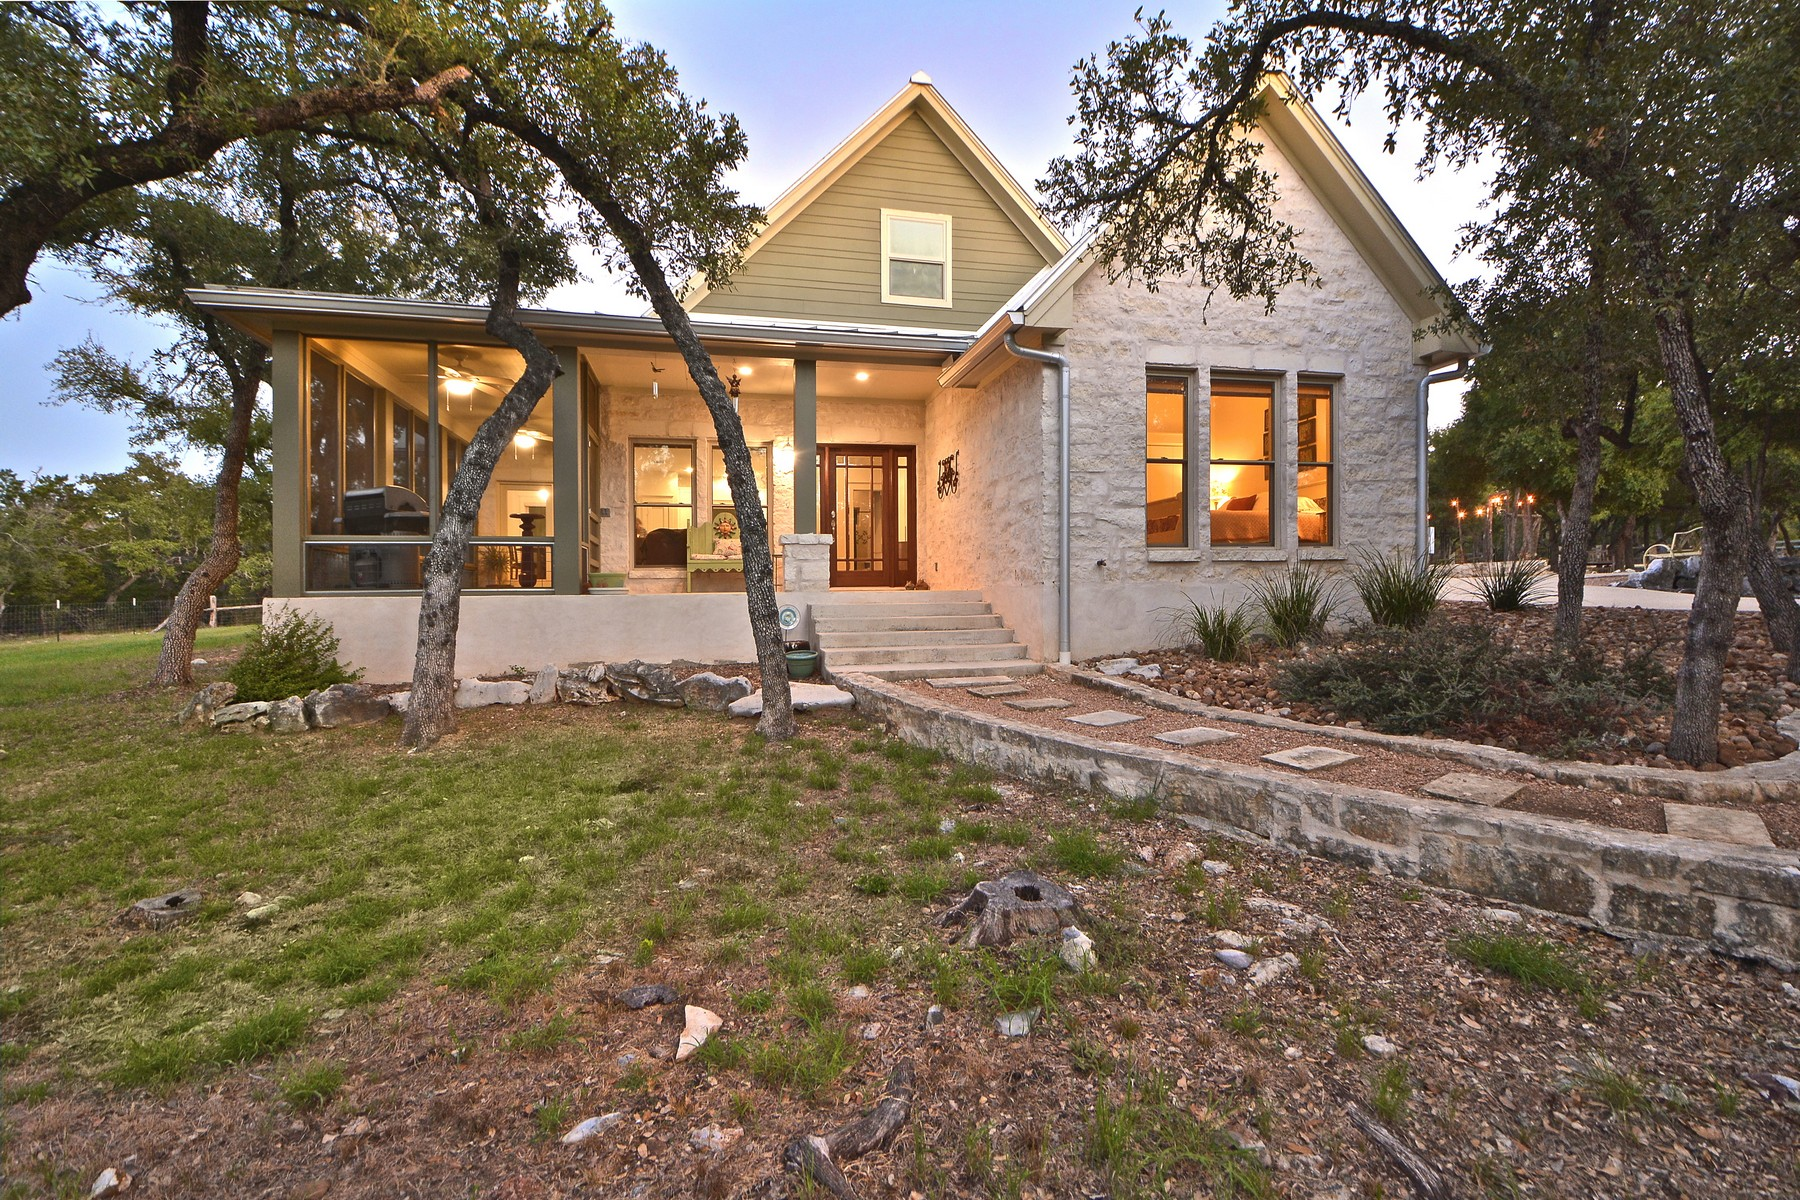 Additional photo for property listing at Wimberley Wonder on 10 acres 322 Trail Ridge Rd Wimberley, Texas 78676 Estados Unidos